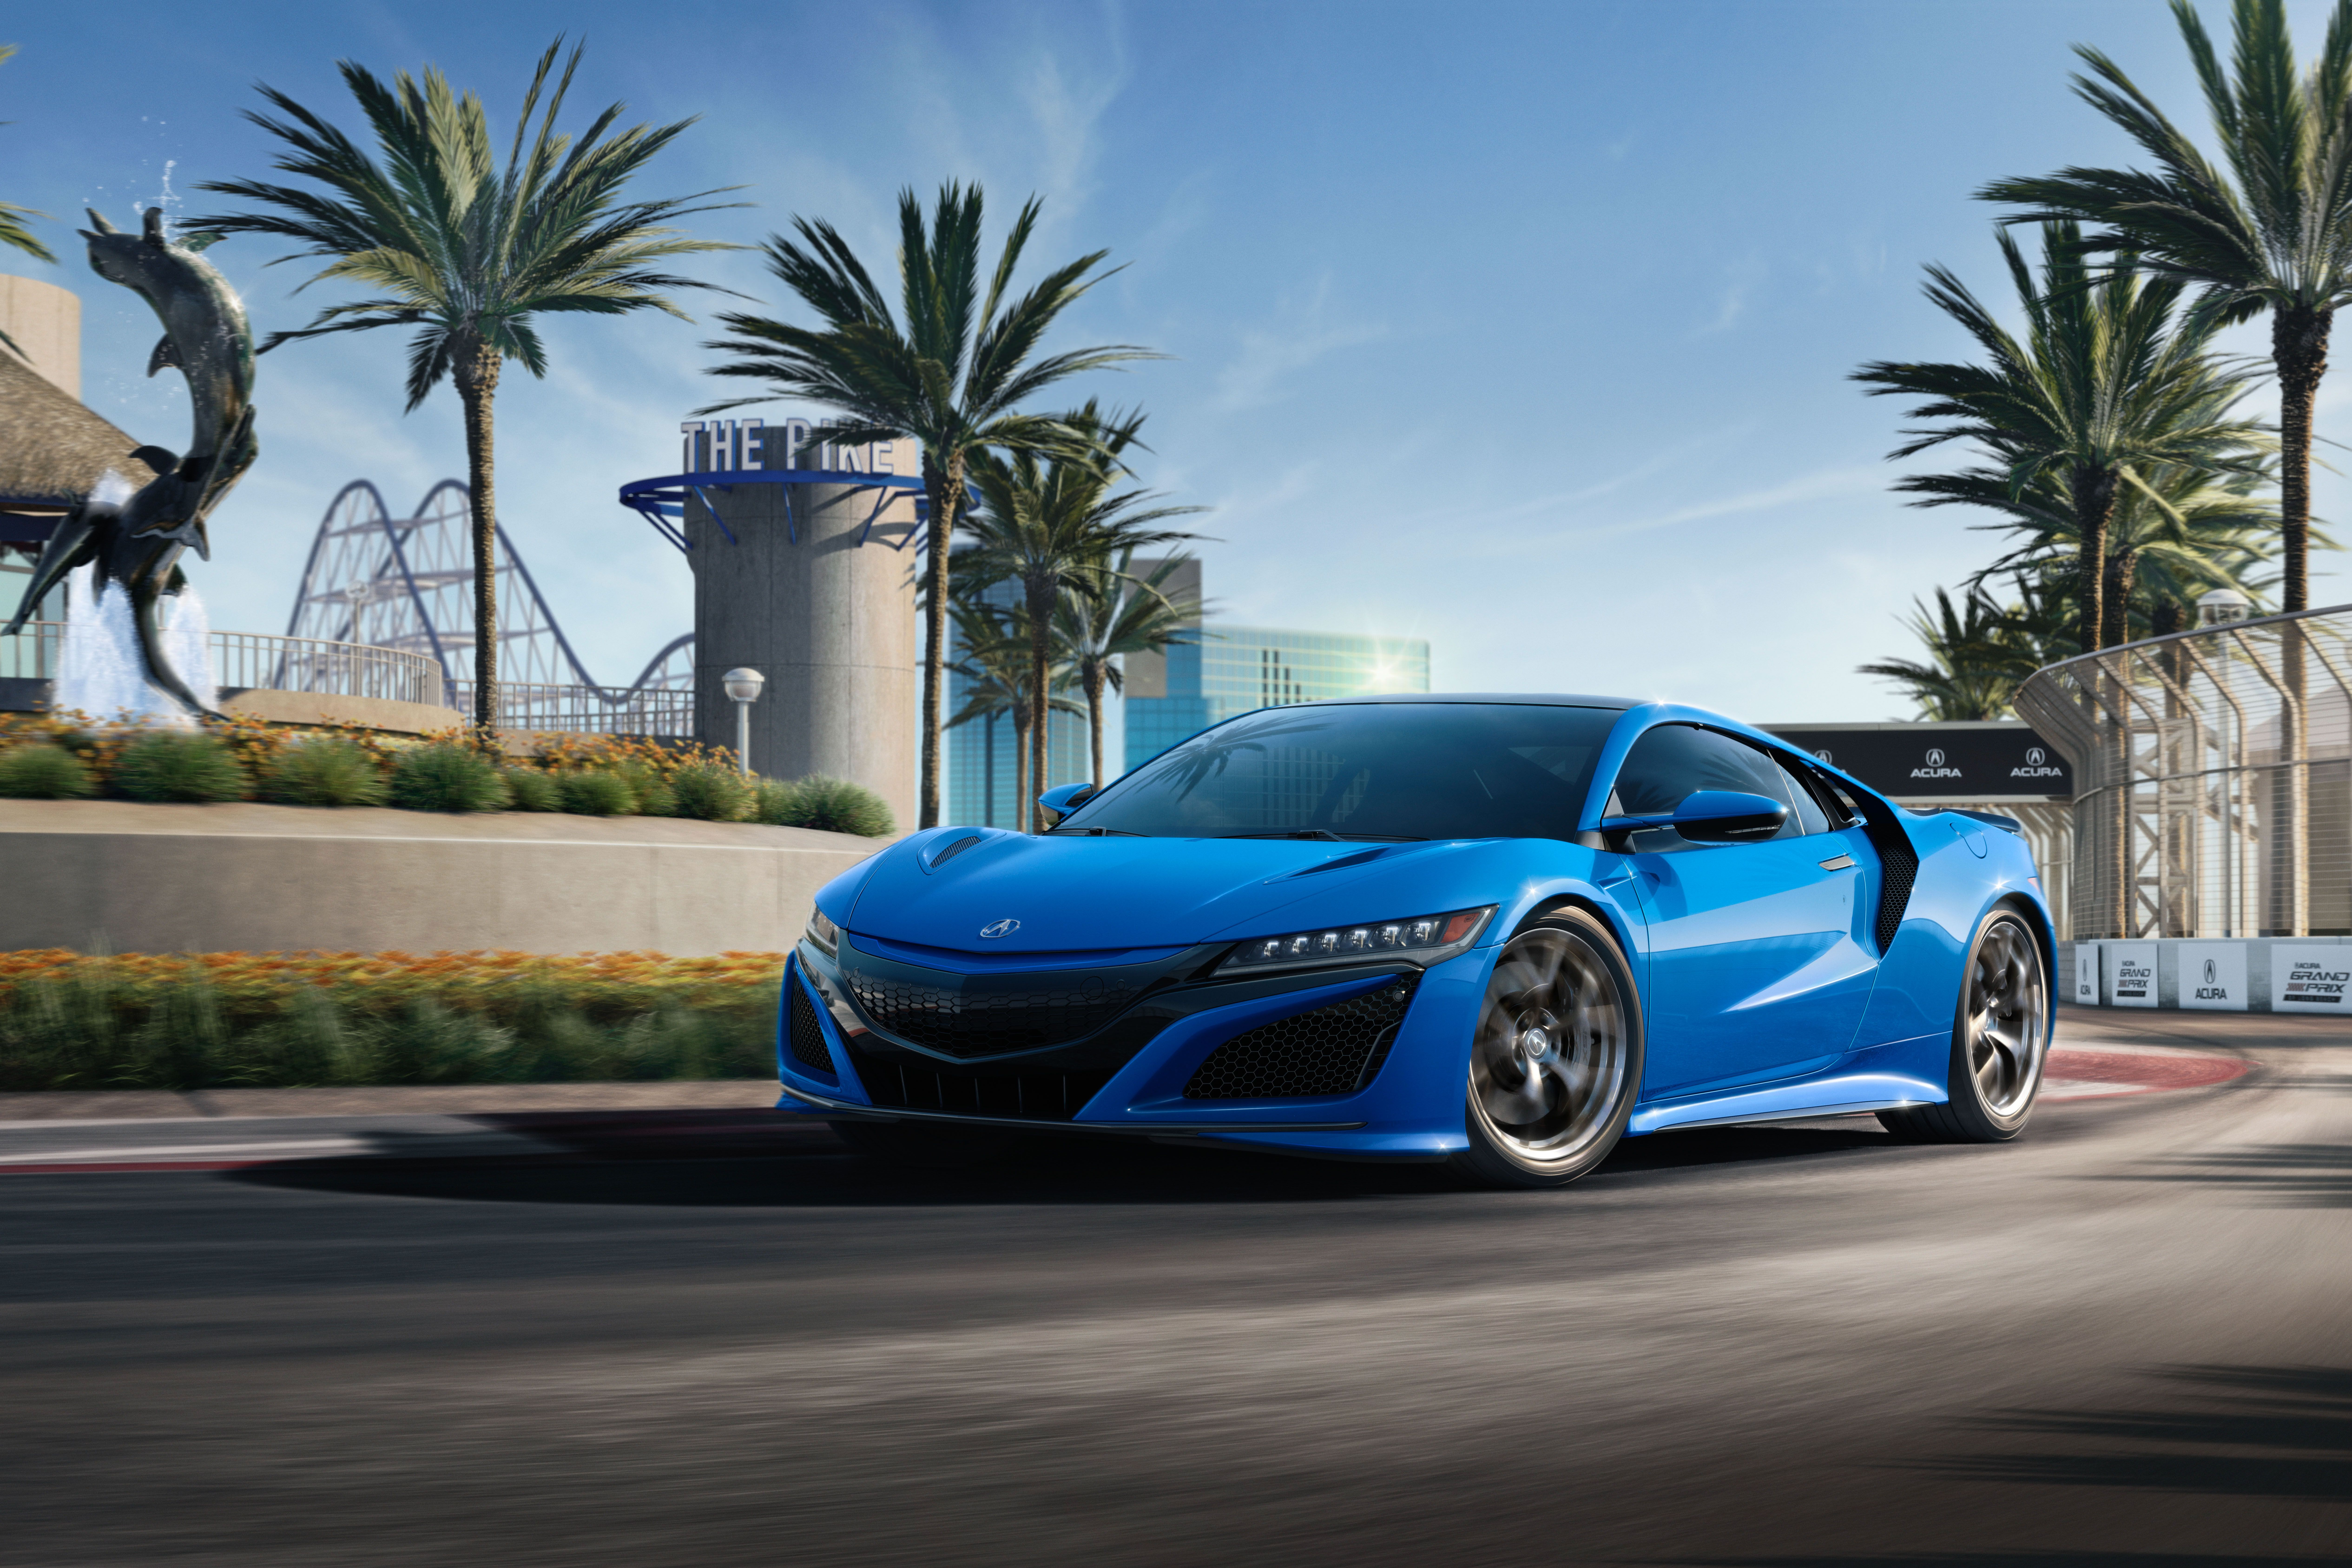 There Are Plenty Of Bad Sequels The Acura Nsx Isn T One Of Them